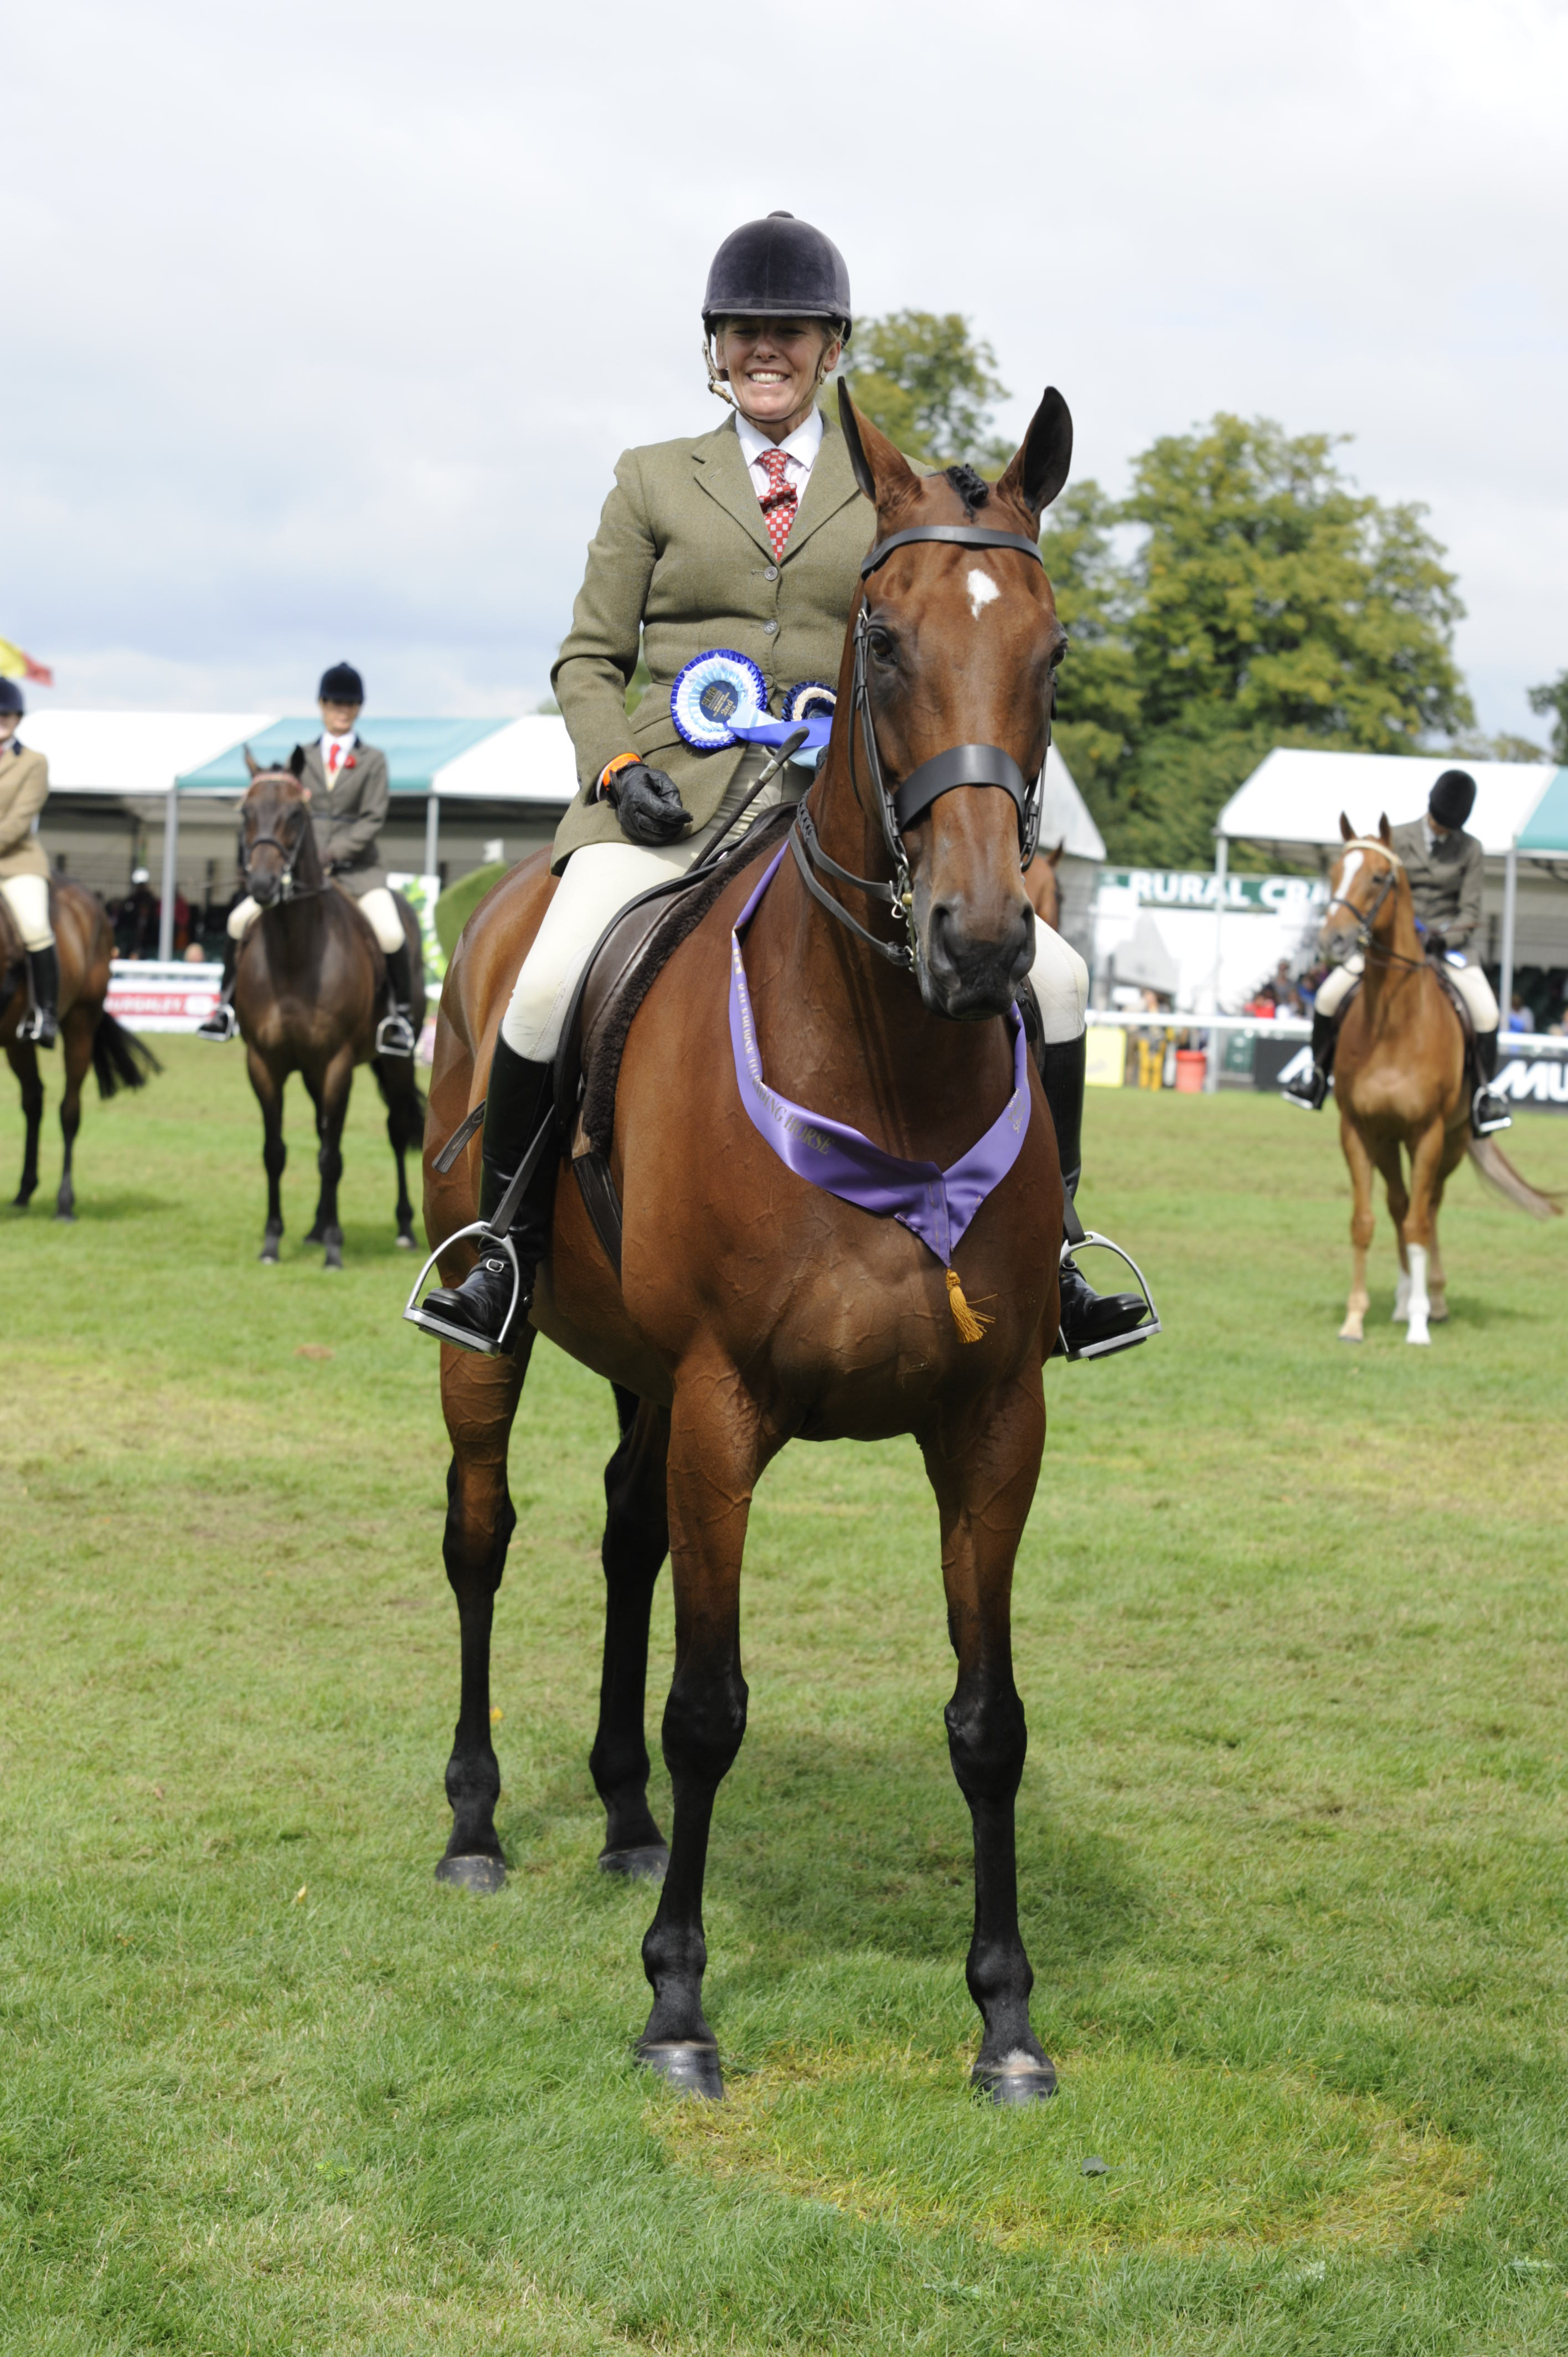 Retrained Racehorses Take To The Burghley Stage The Gaitpost